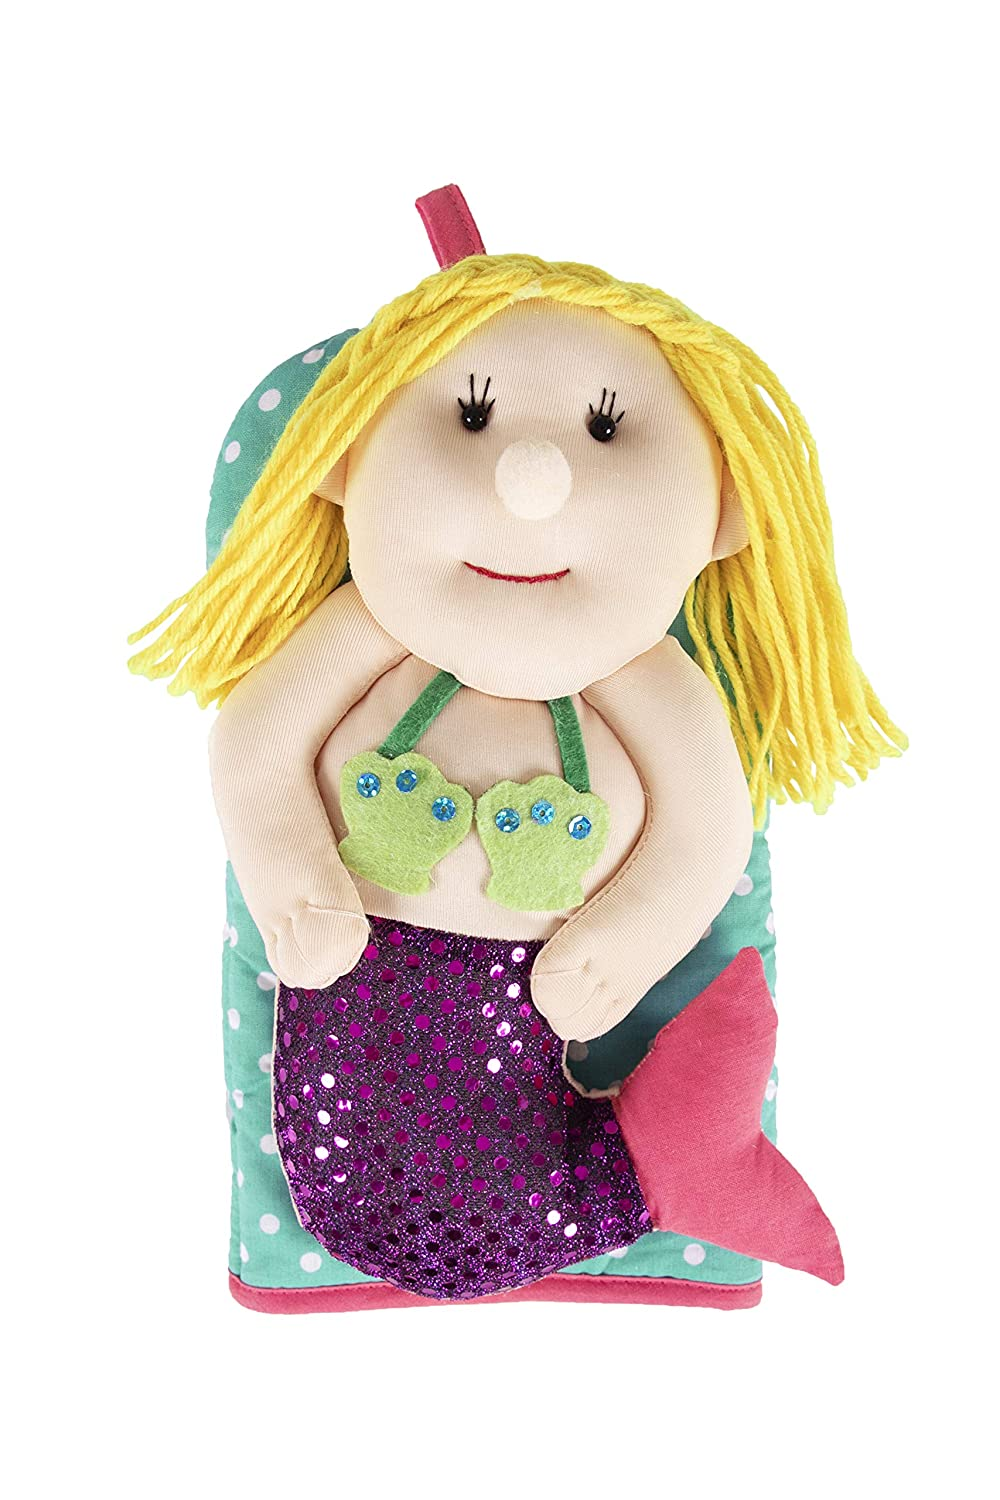 "Ritz Kitchen Friends Novelty Cotton Oven Mitt, Decorative Item Only, Great Gift, 6"" x 11"", Mermaid, Single Unit"